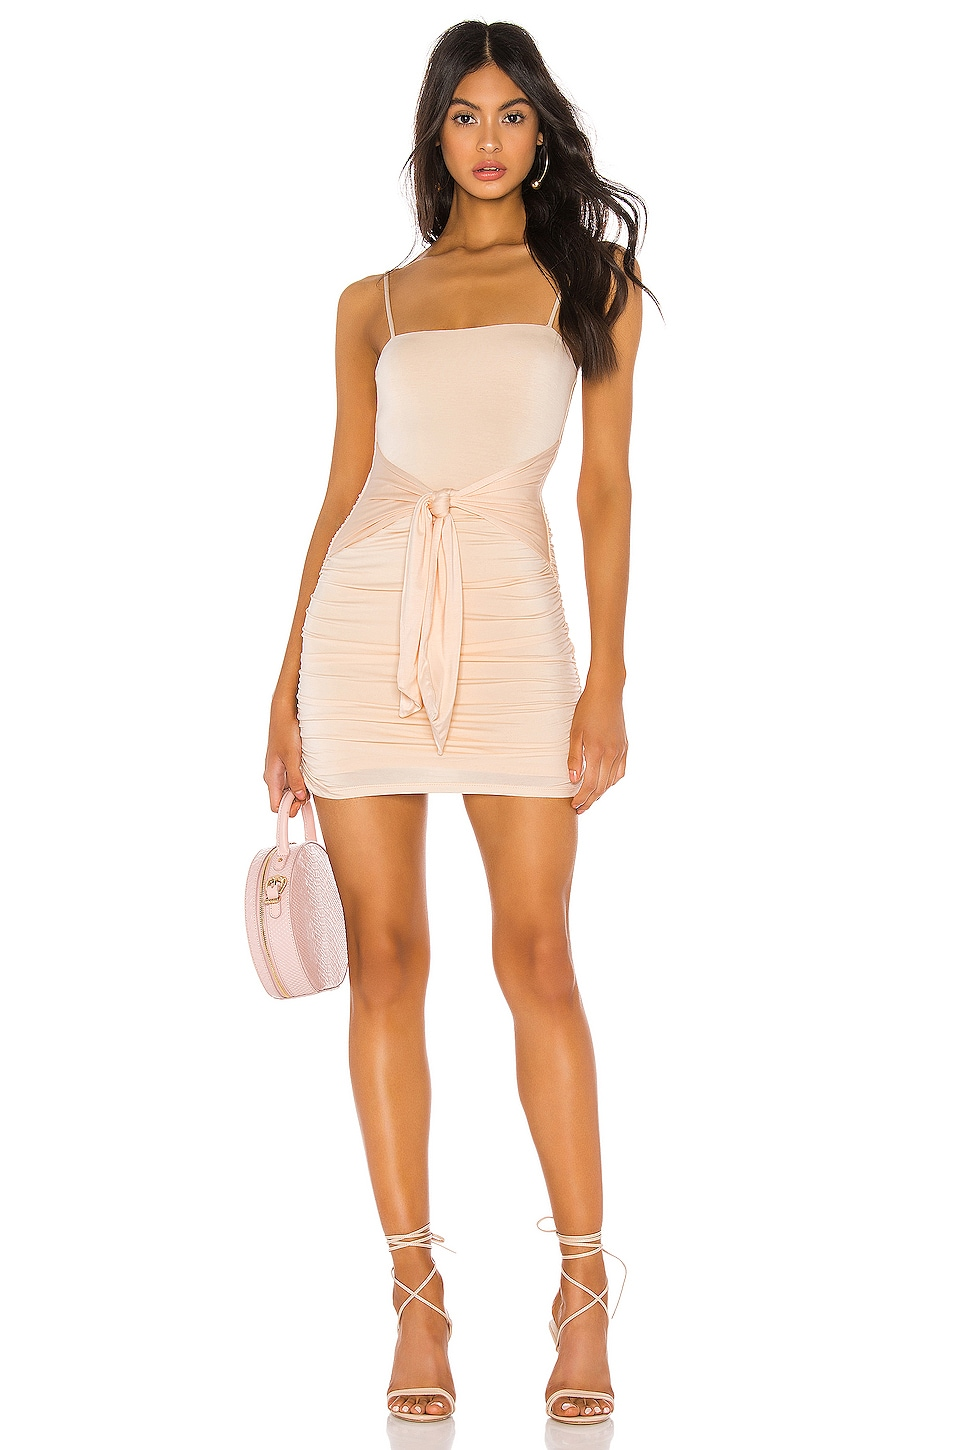 Lovers + Friends Jocelyn Dress in Nude